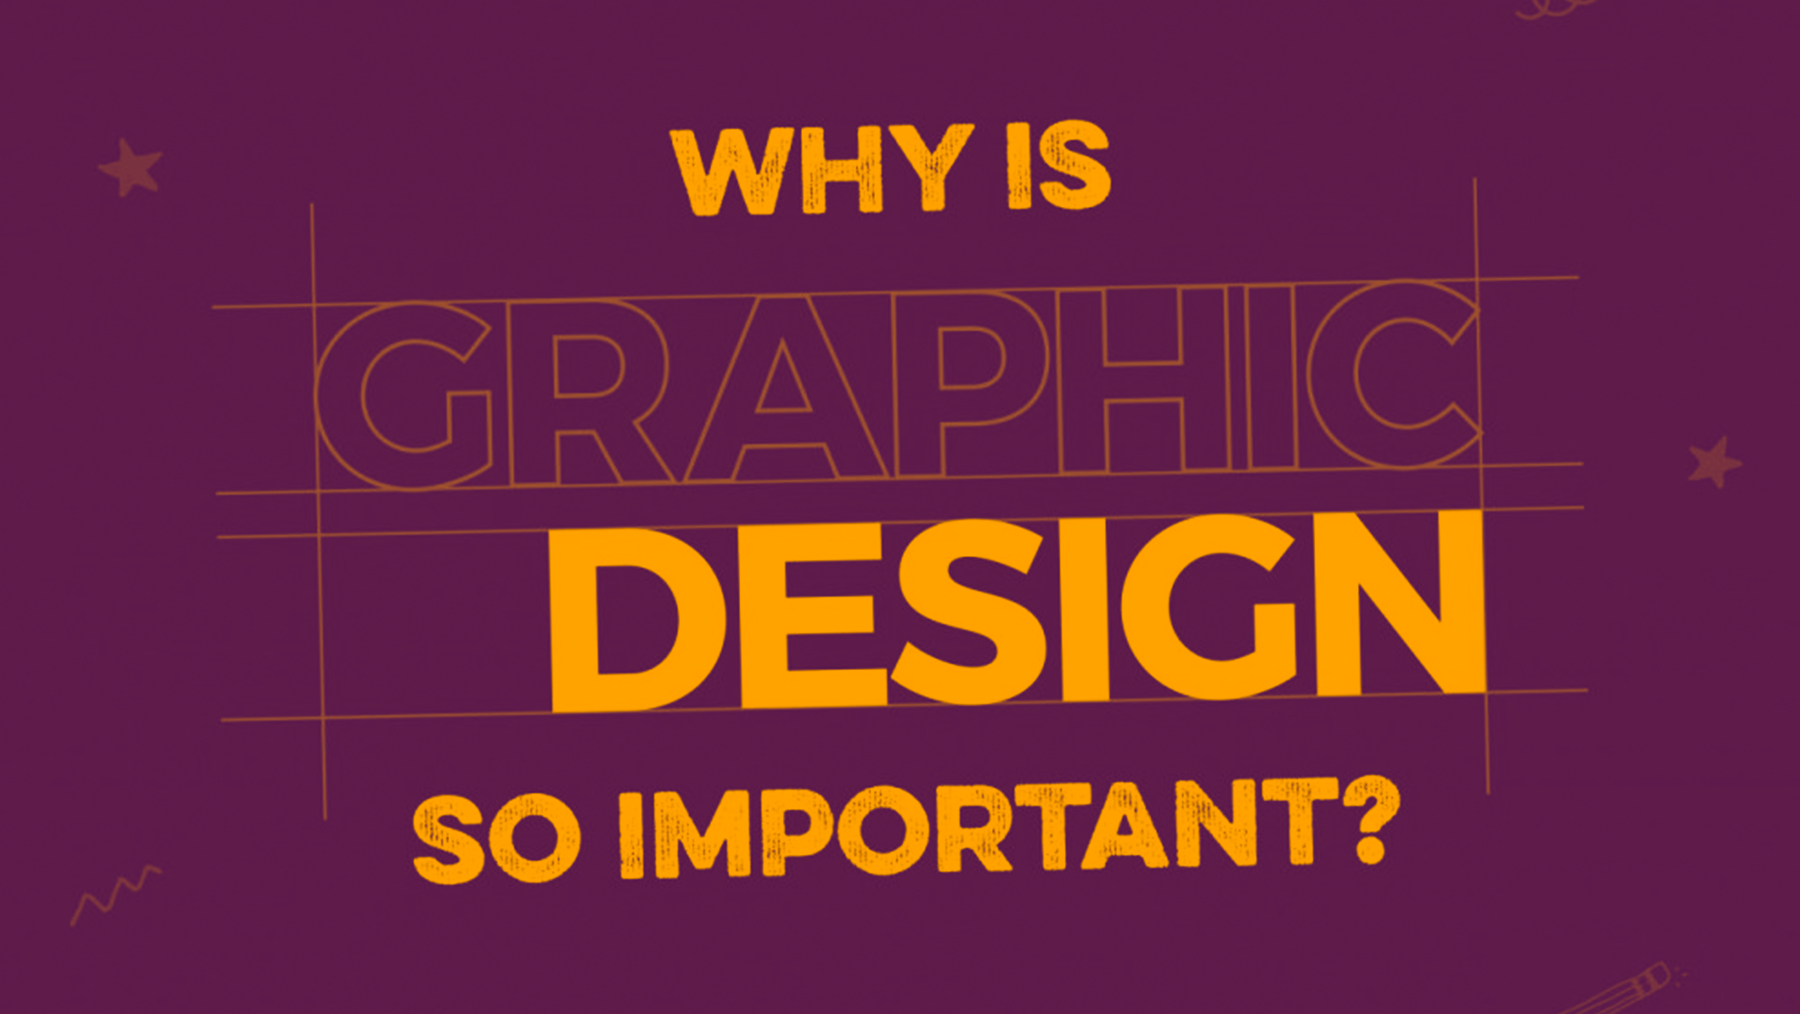 Why is graphic design so important?